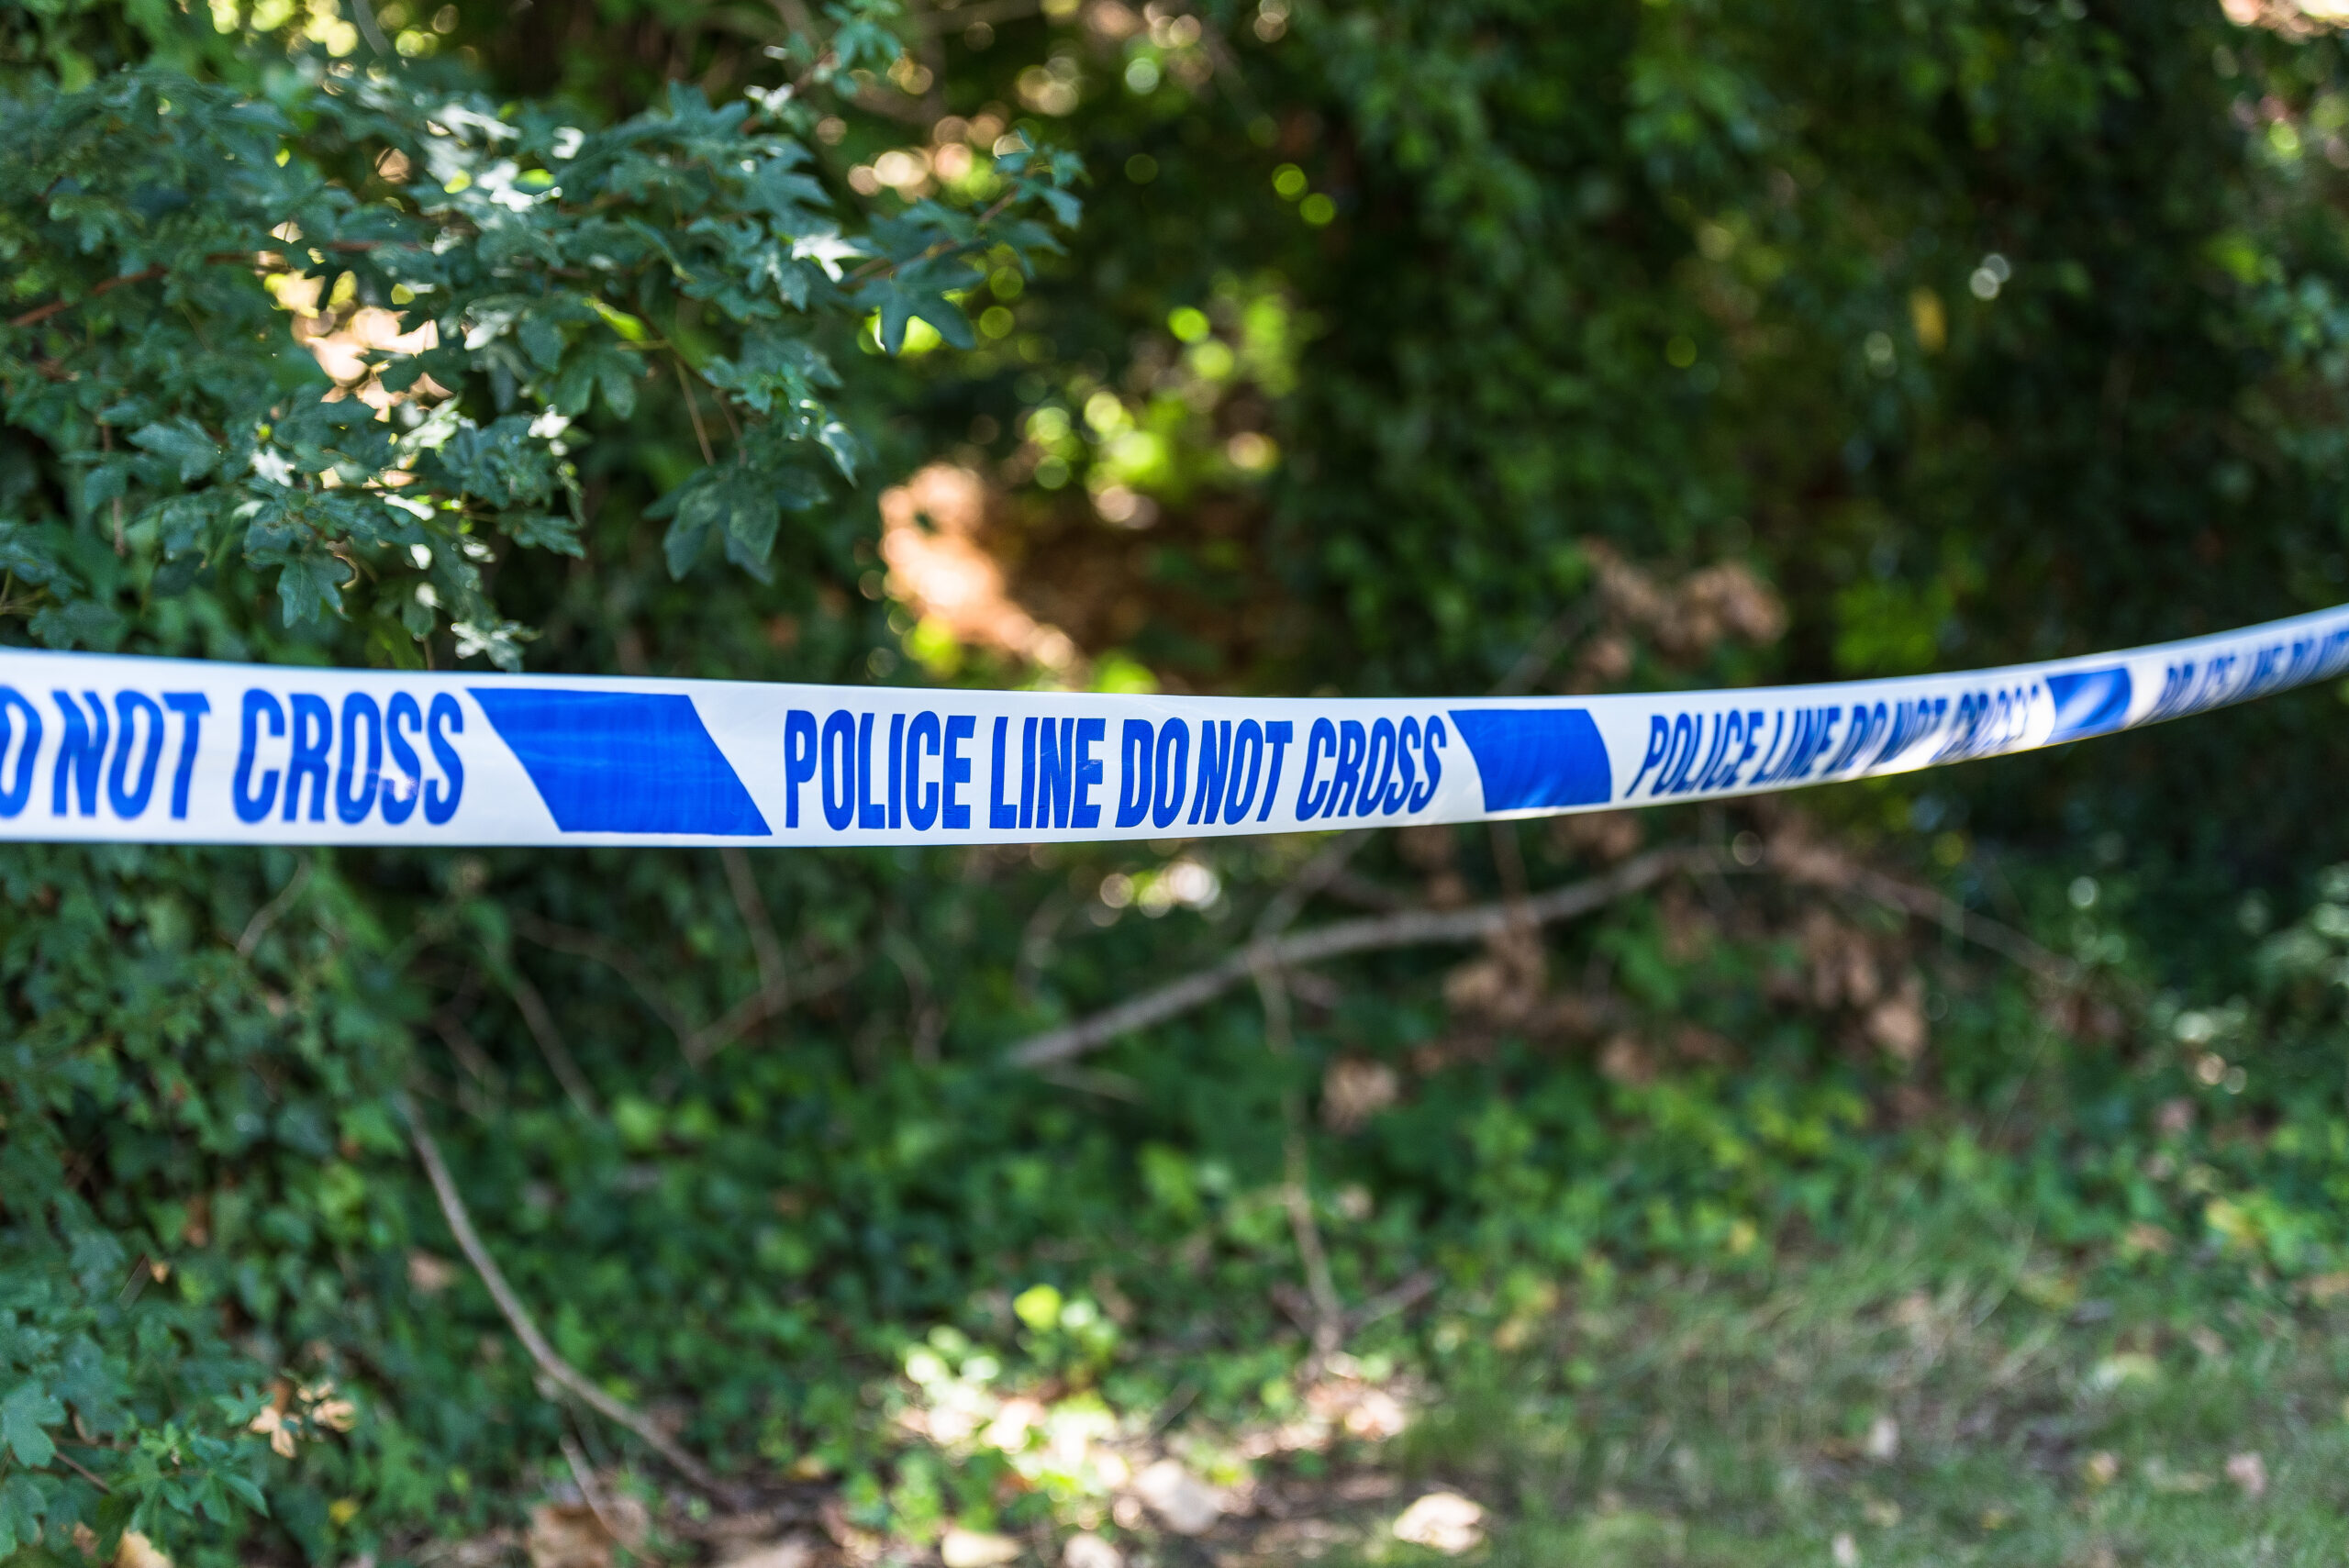 Police appeal for witnesses after fatal accident near Ripon